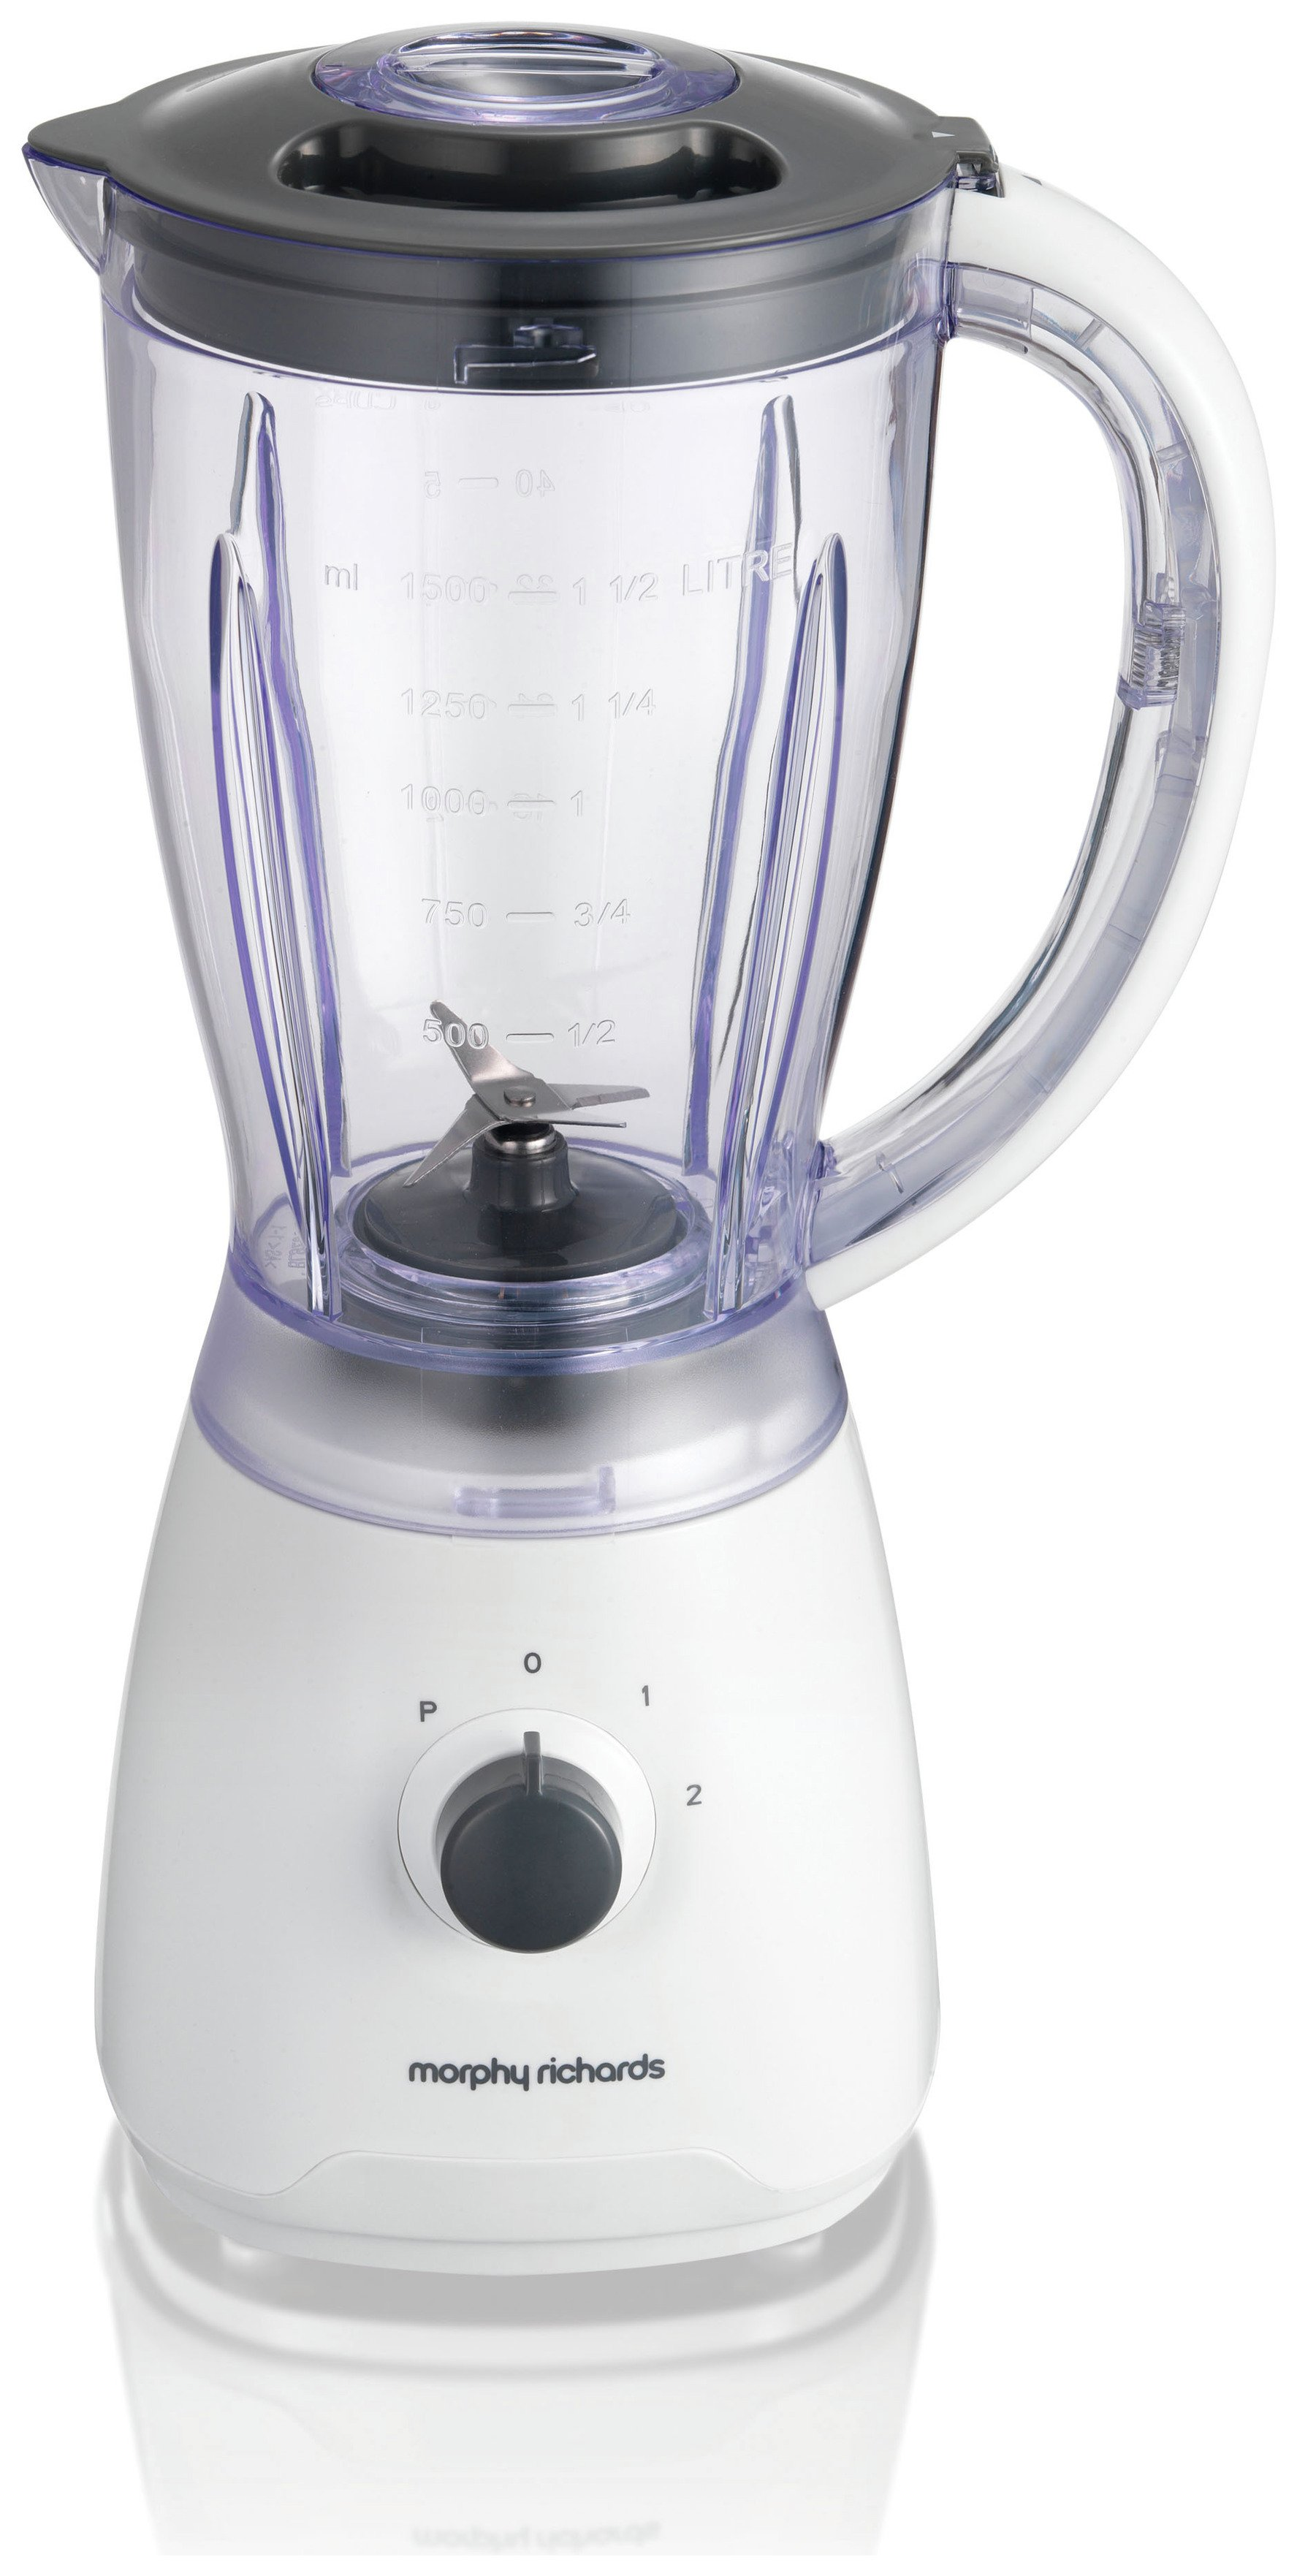 morphy-richards-403050-blender-white